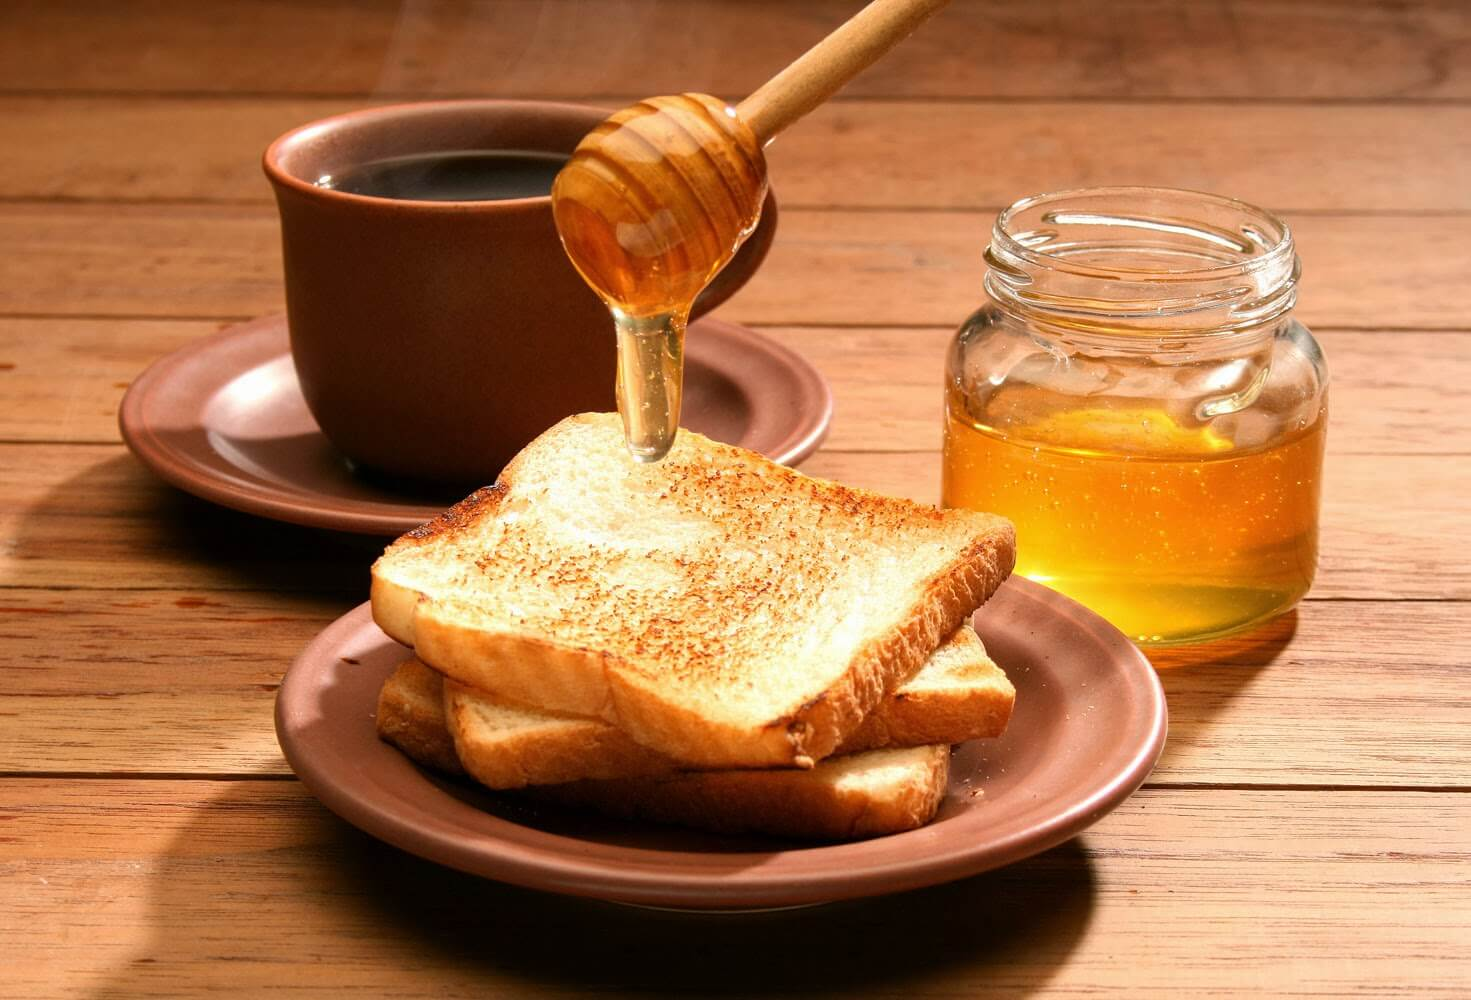 Pouring some honey on a toast.